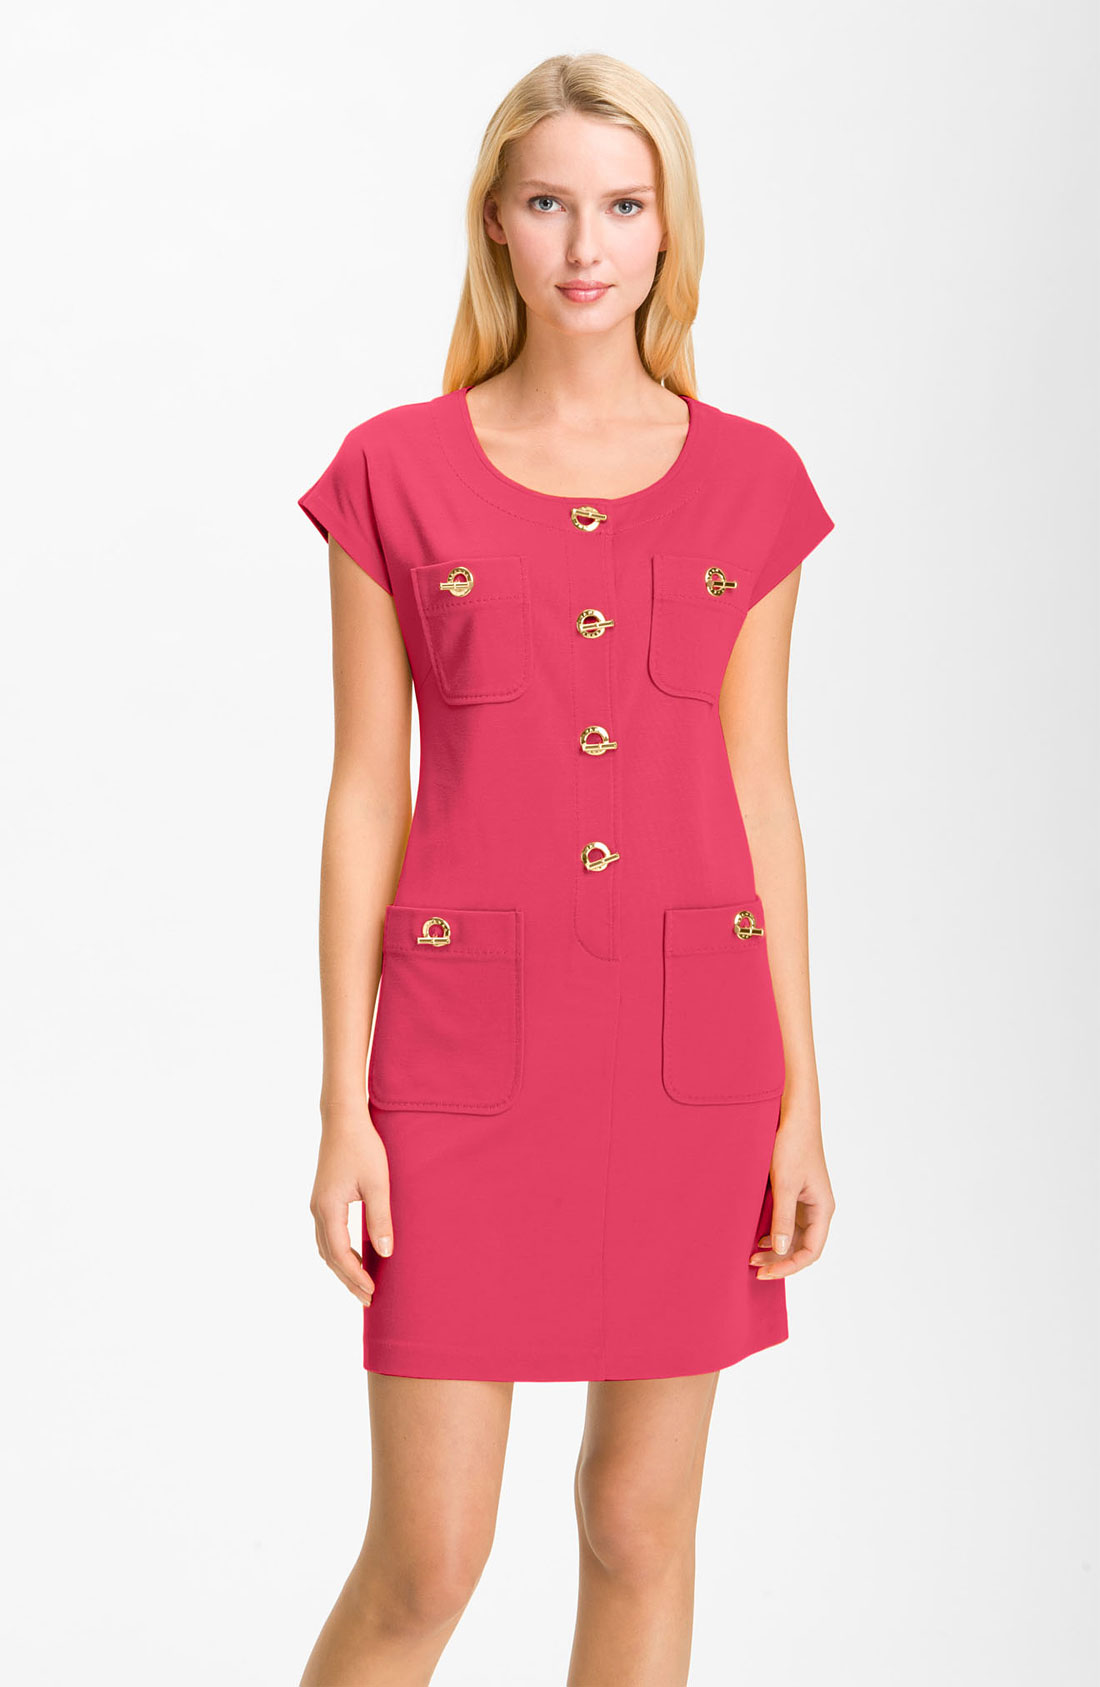 Ivanka Trump Lillian D... Ivanka Trump Clothing